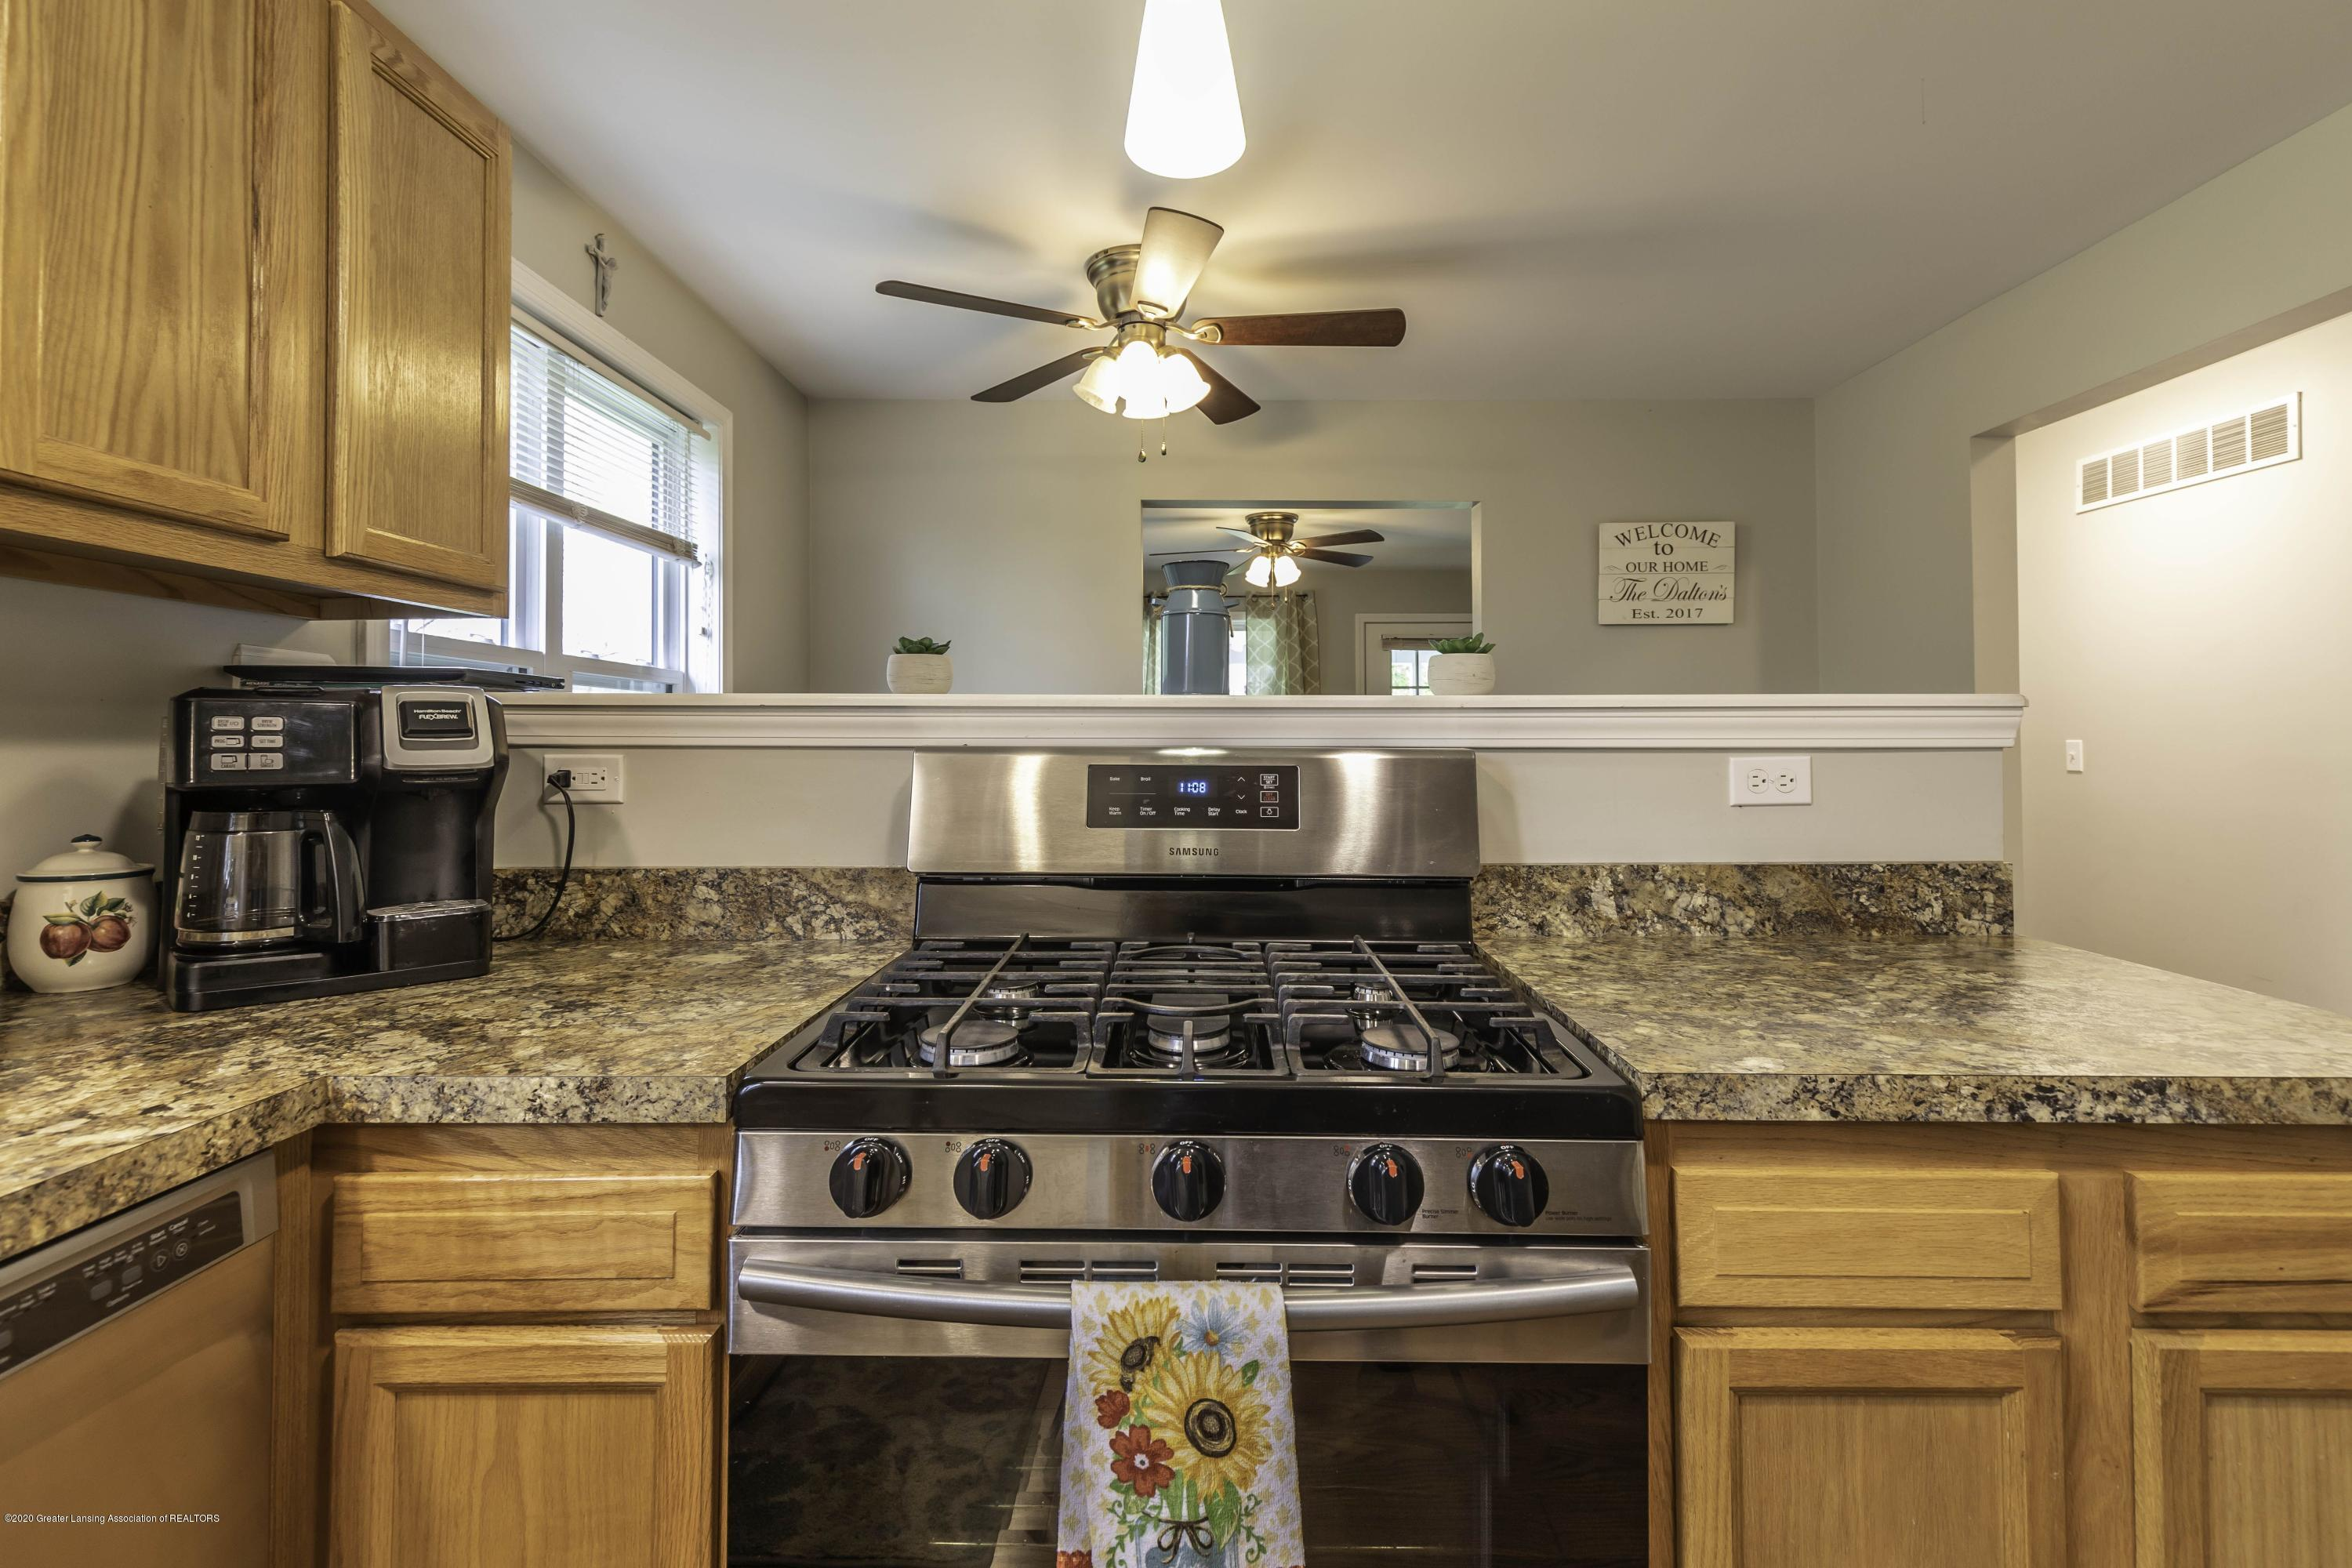 790 Woodworth Rd - Kitchen4 - 13